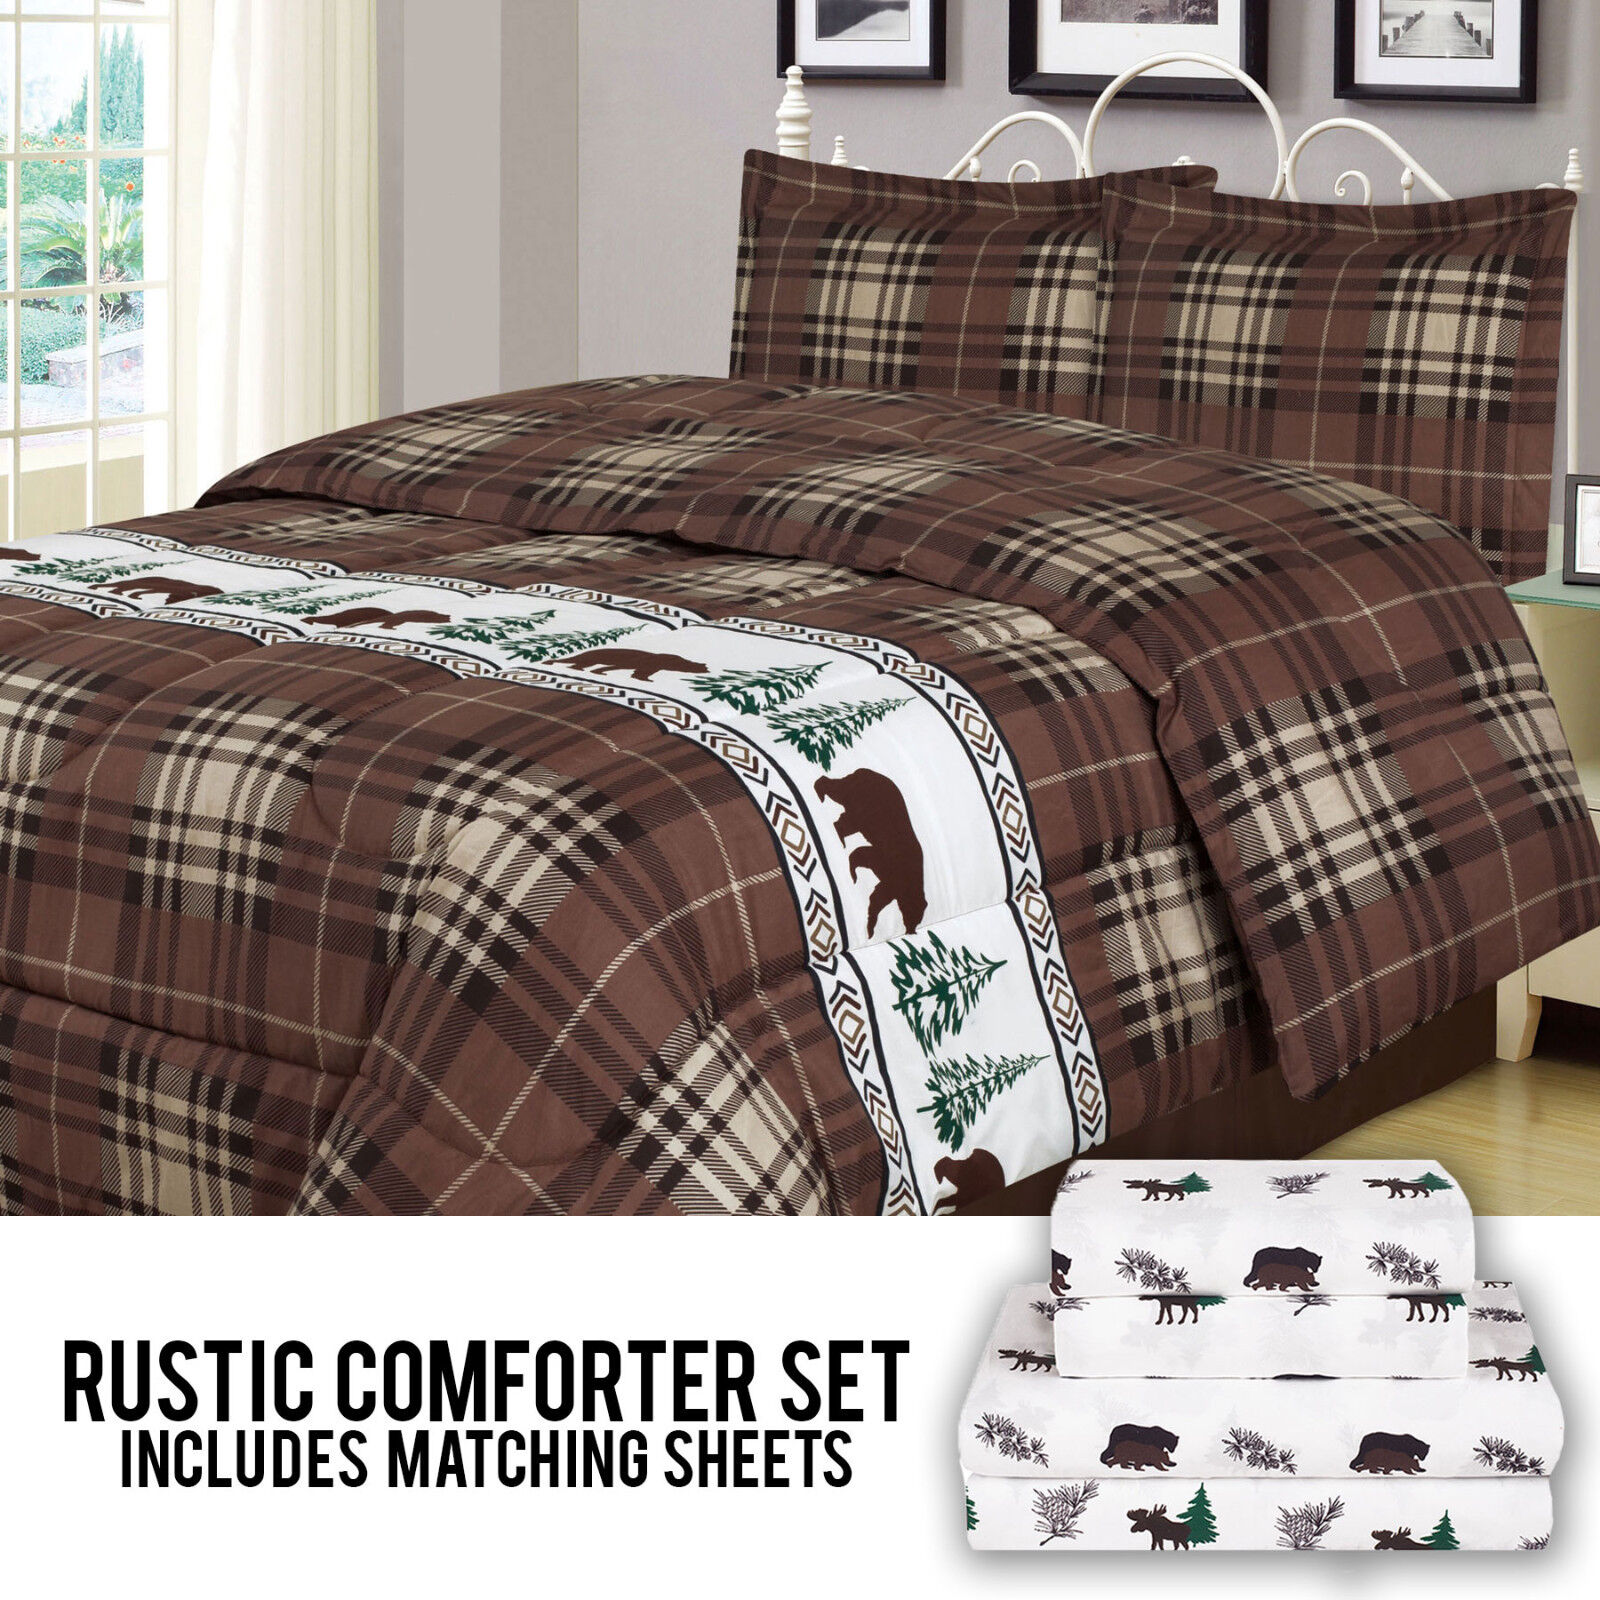 Rustic Bear Comforter Bedding and Sheet Set Cabin Moose Hunting Lodge Bed in Bag Bed-in-a-Bag